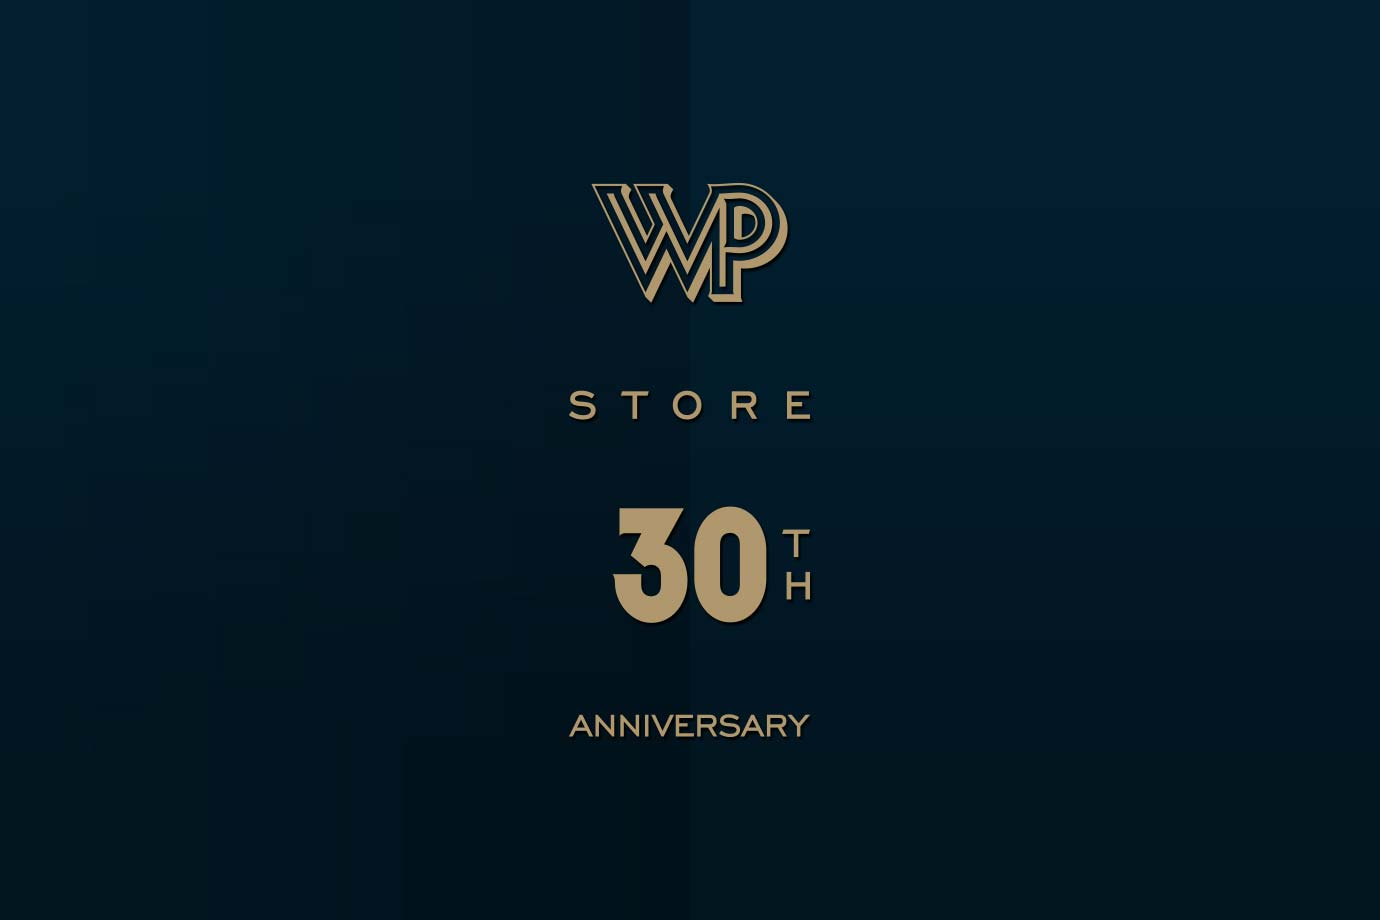 Anthony Hooper Graphic Design - WP Lavori in Corso - WP Store 30th Anniversary